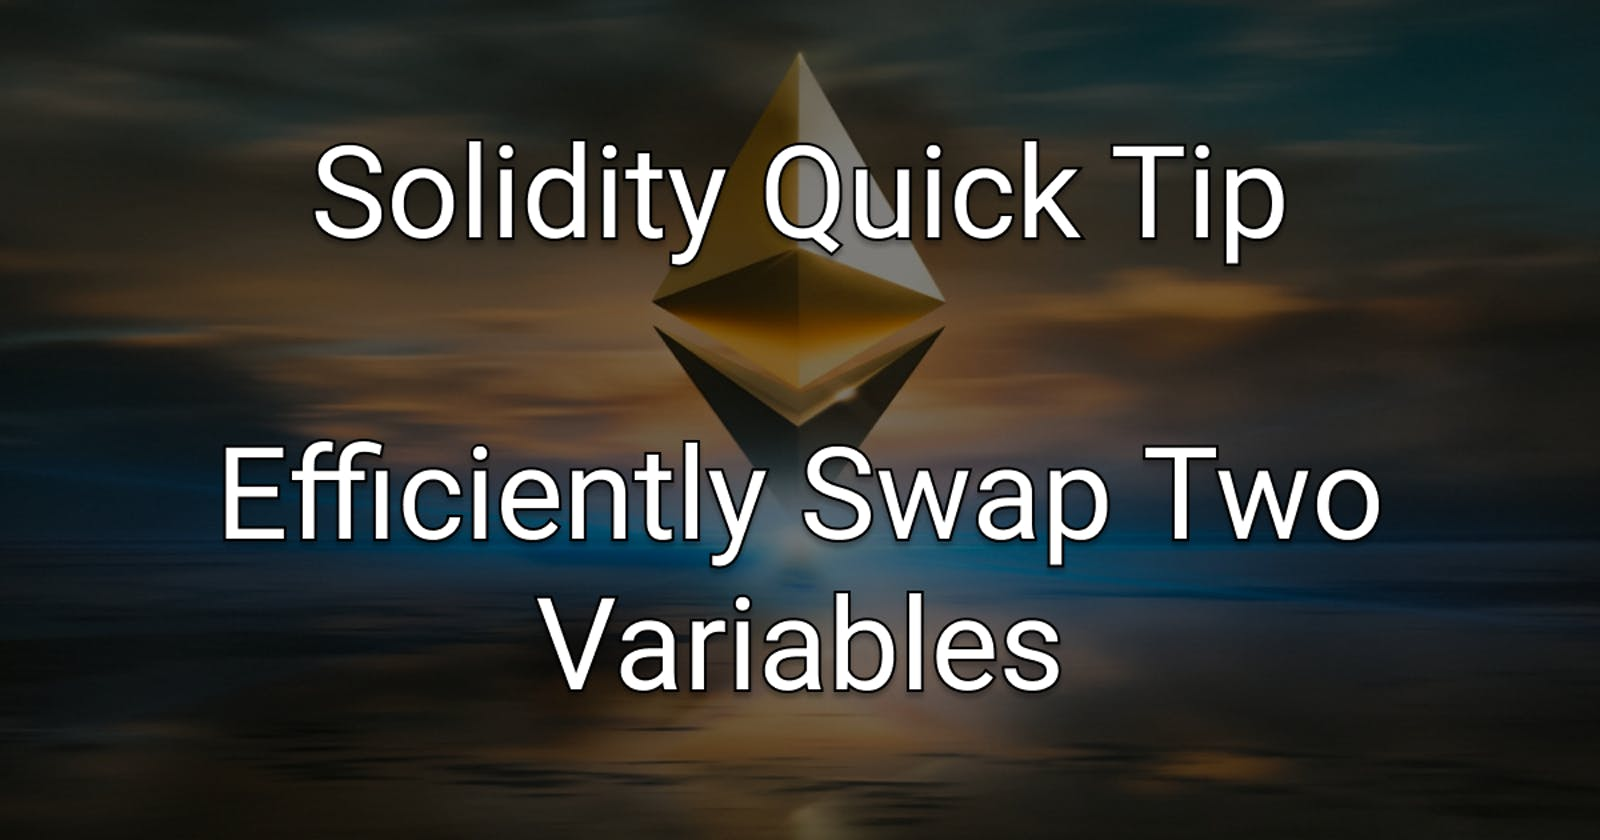 Solidity Quick Tip: Efficiently Swap Two Variables